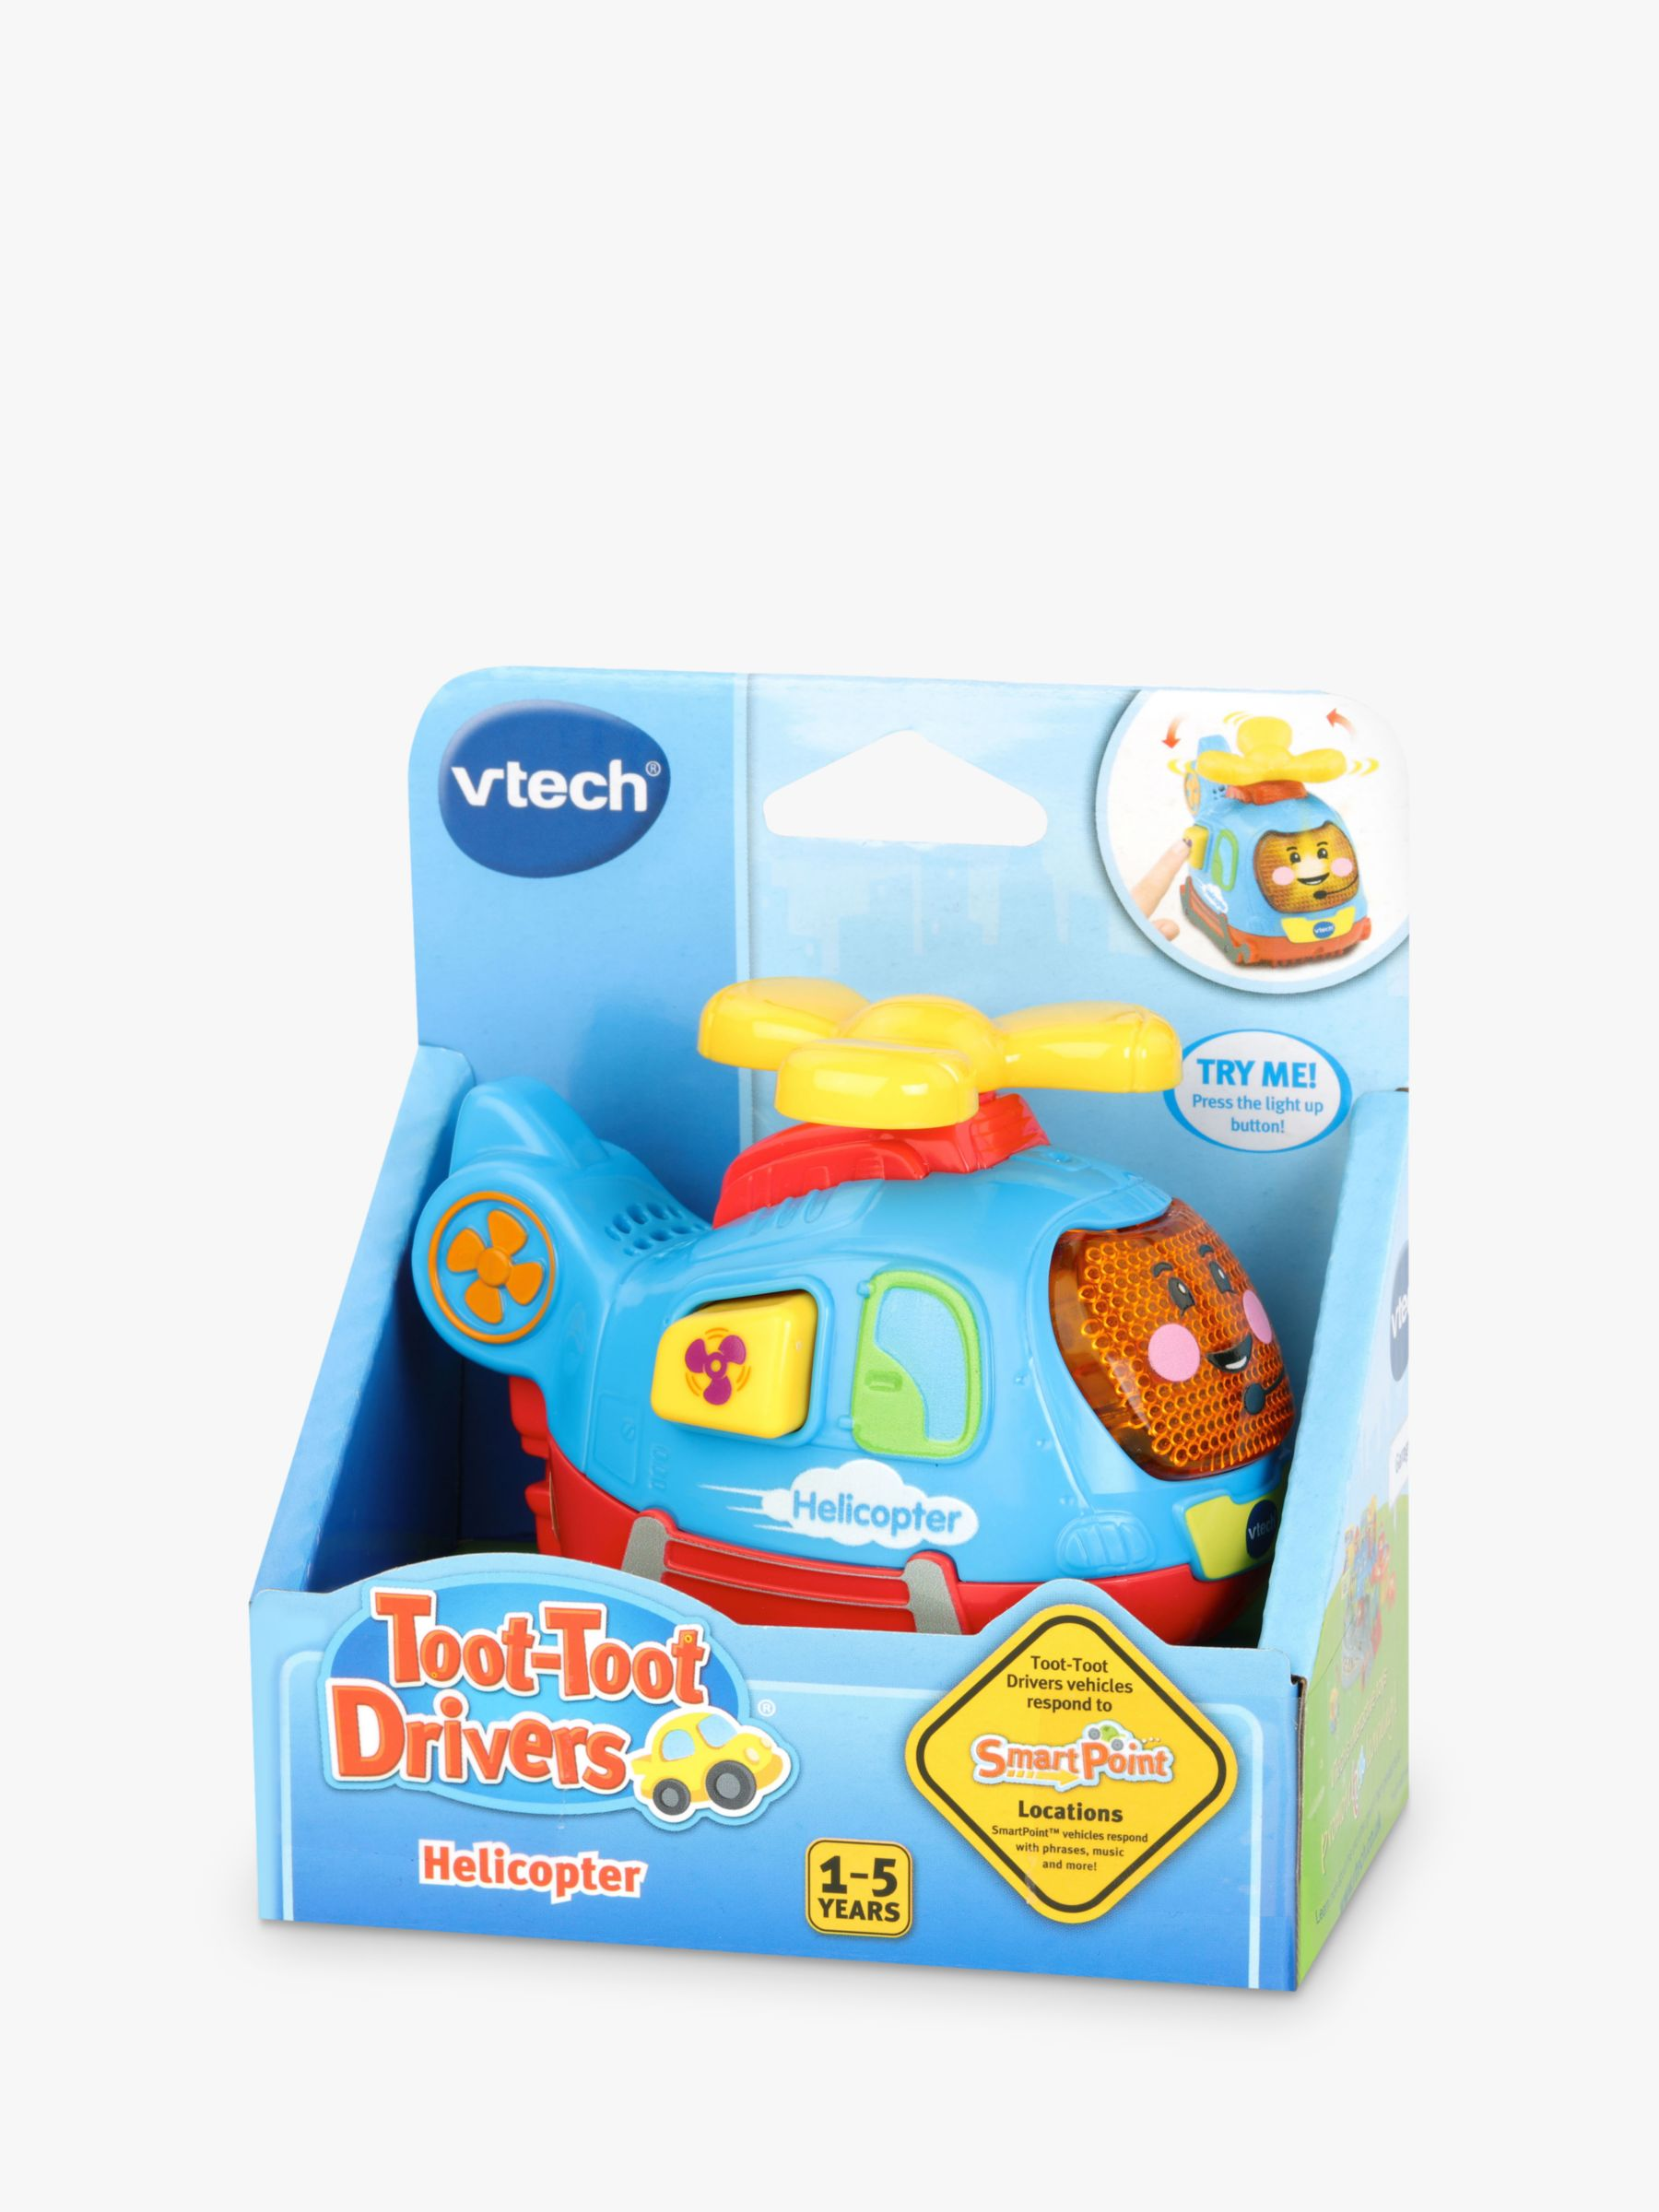 Vtech VTech Toot-Toot Drivers Helicopter